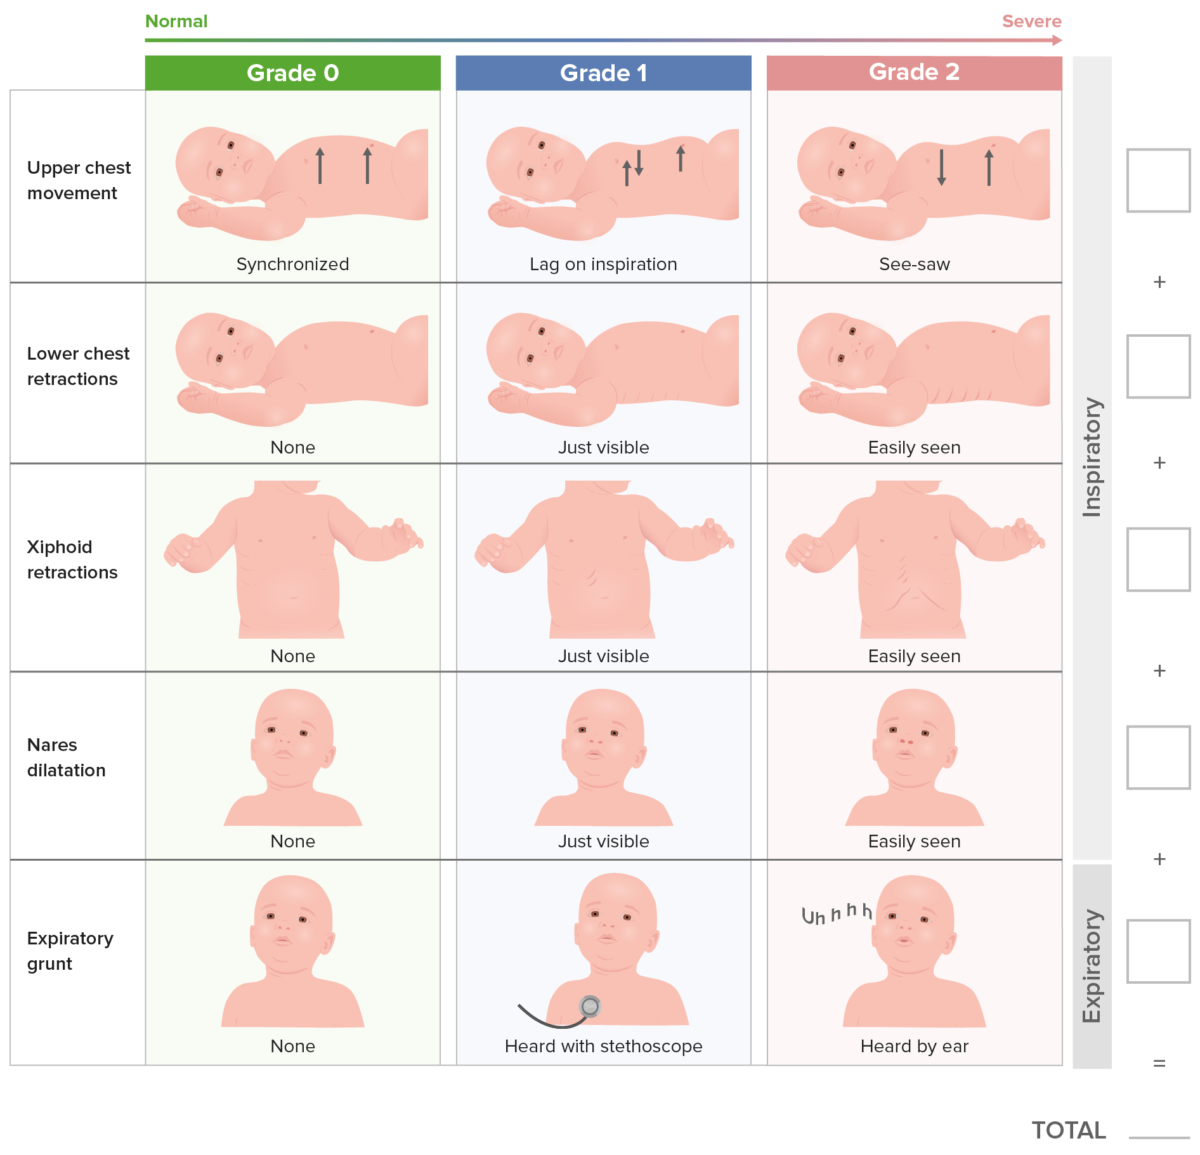 Silverman scoring system for respiratory difficulty